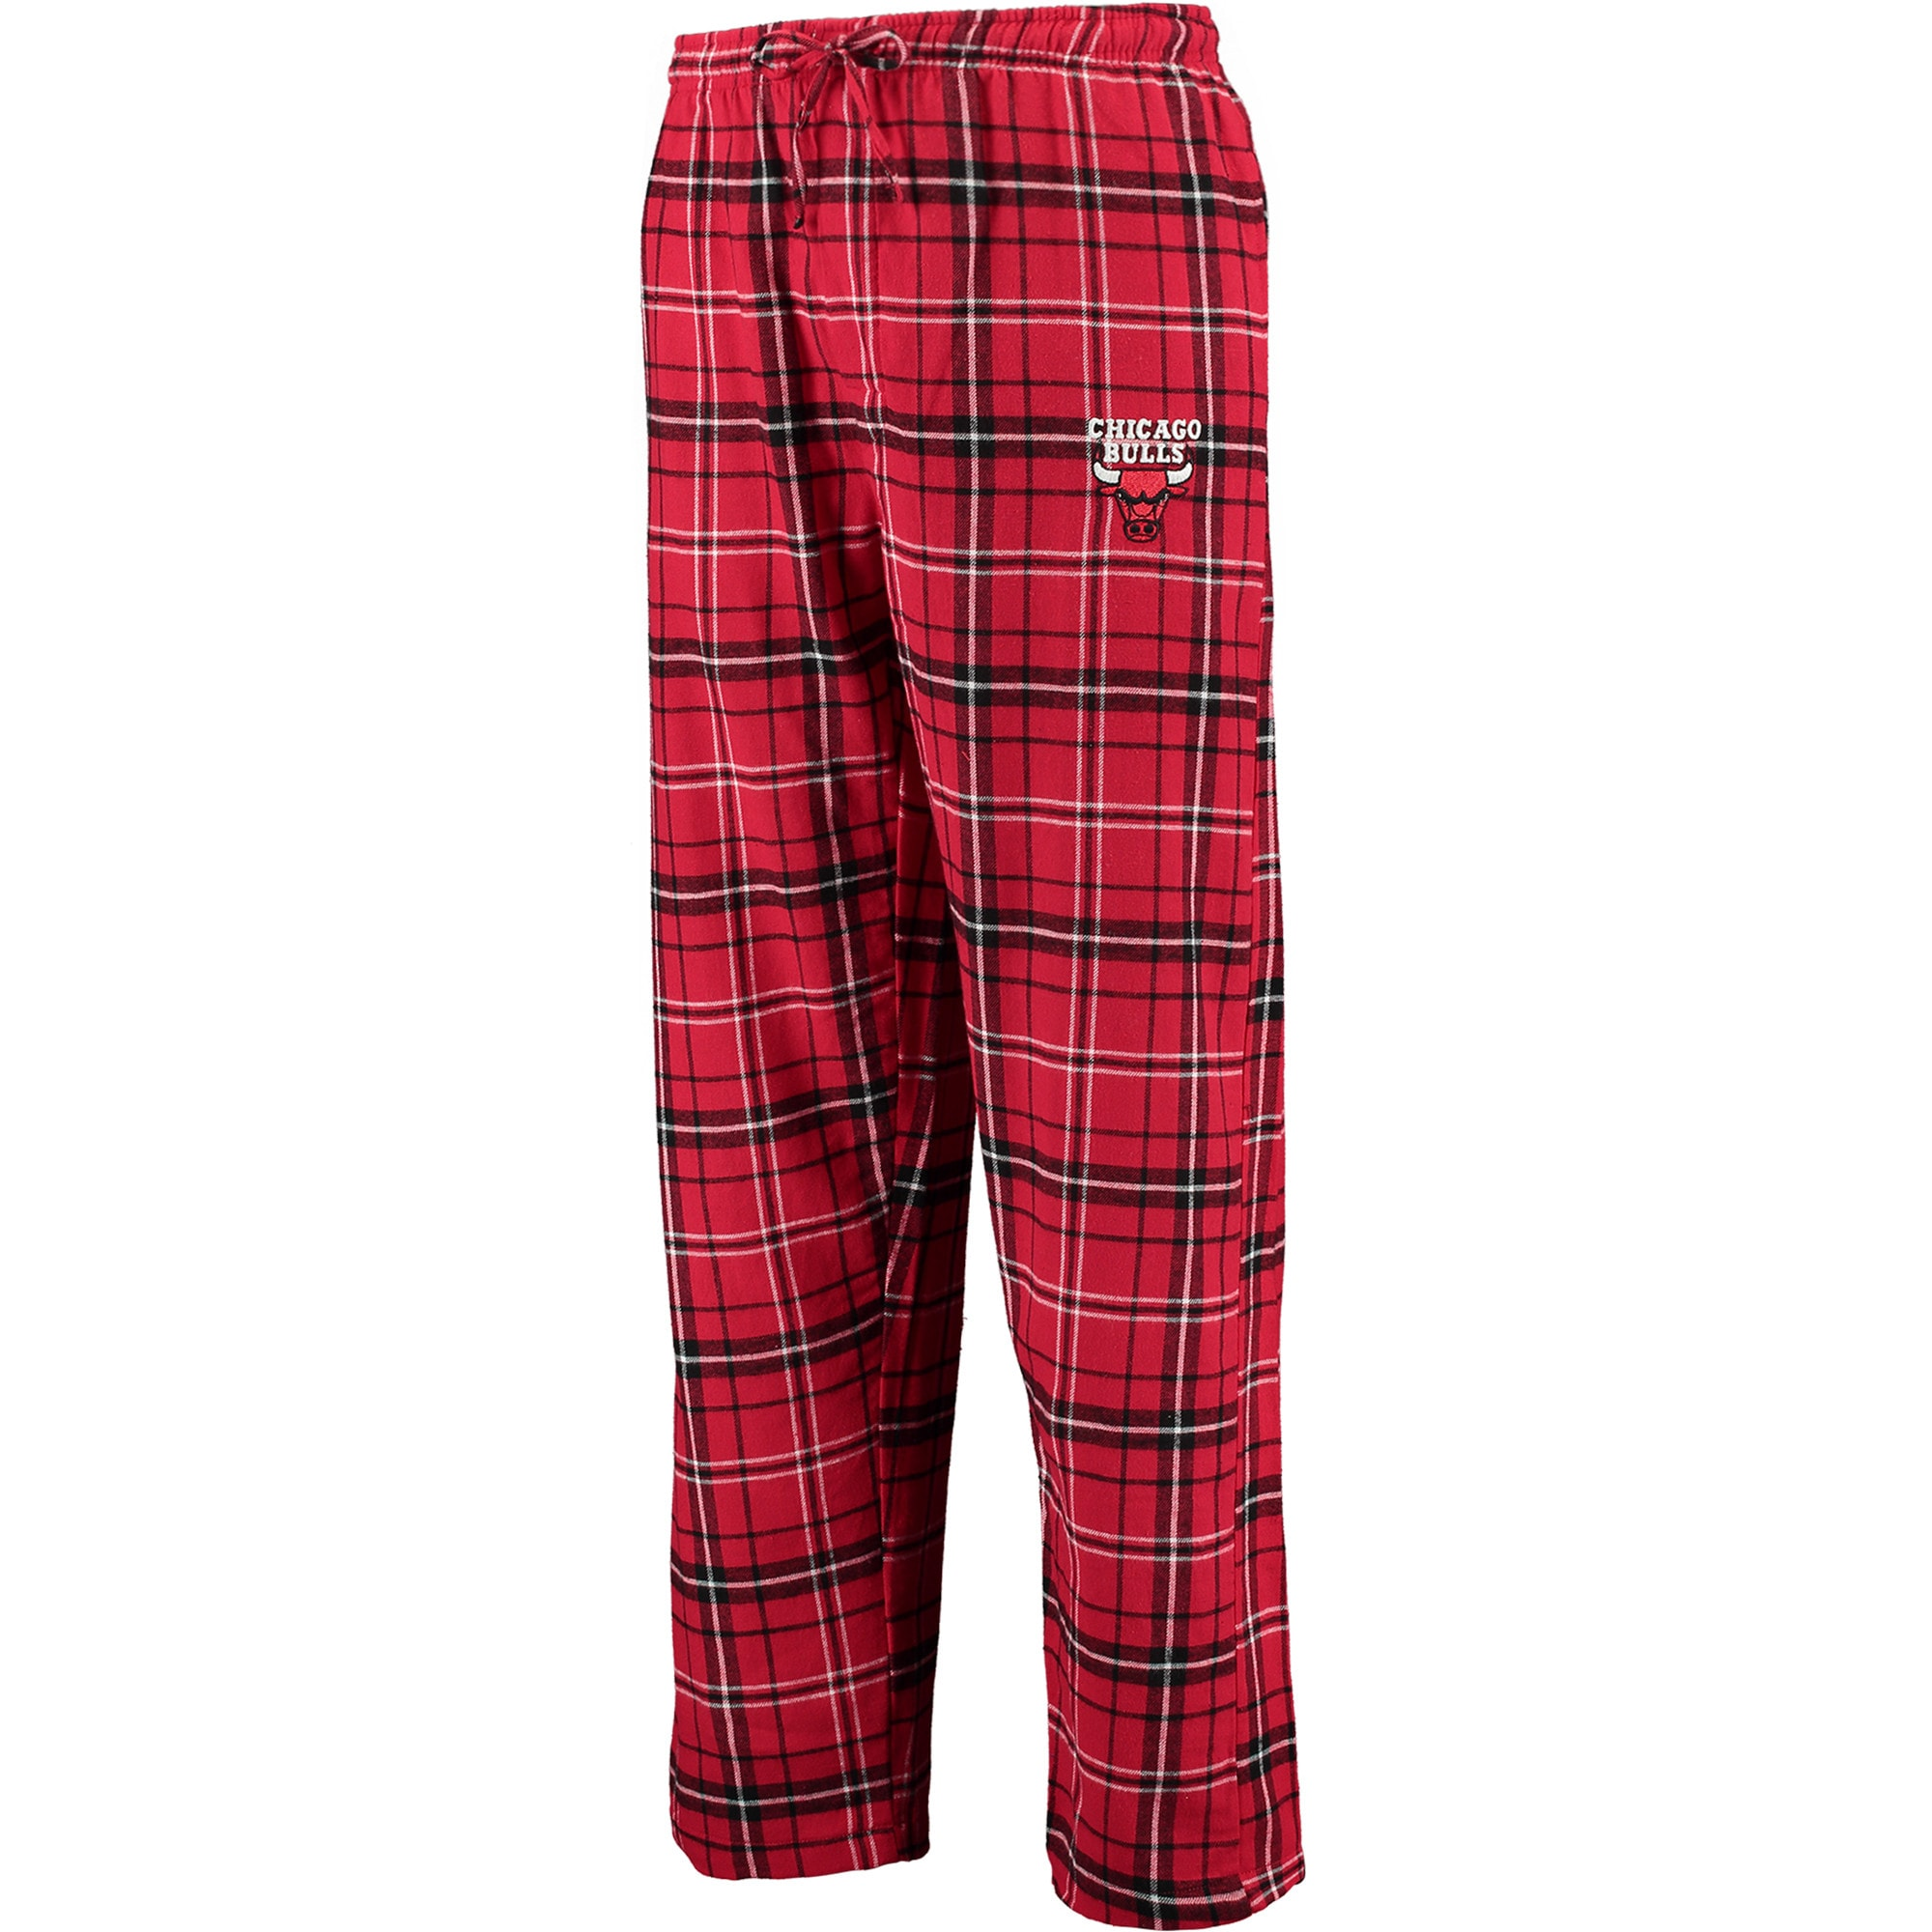 Chicago Bulls Concepts Sport Ultimate Big Sizes Flannel Sleep Pants - Red/Black